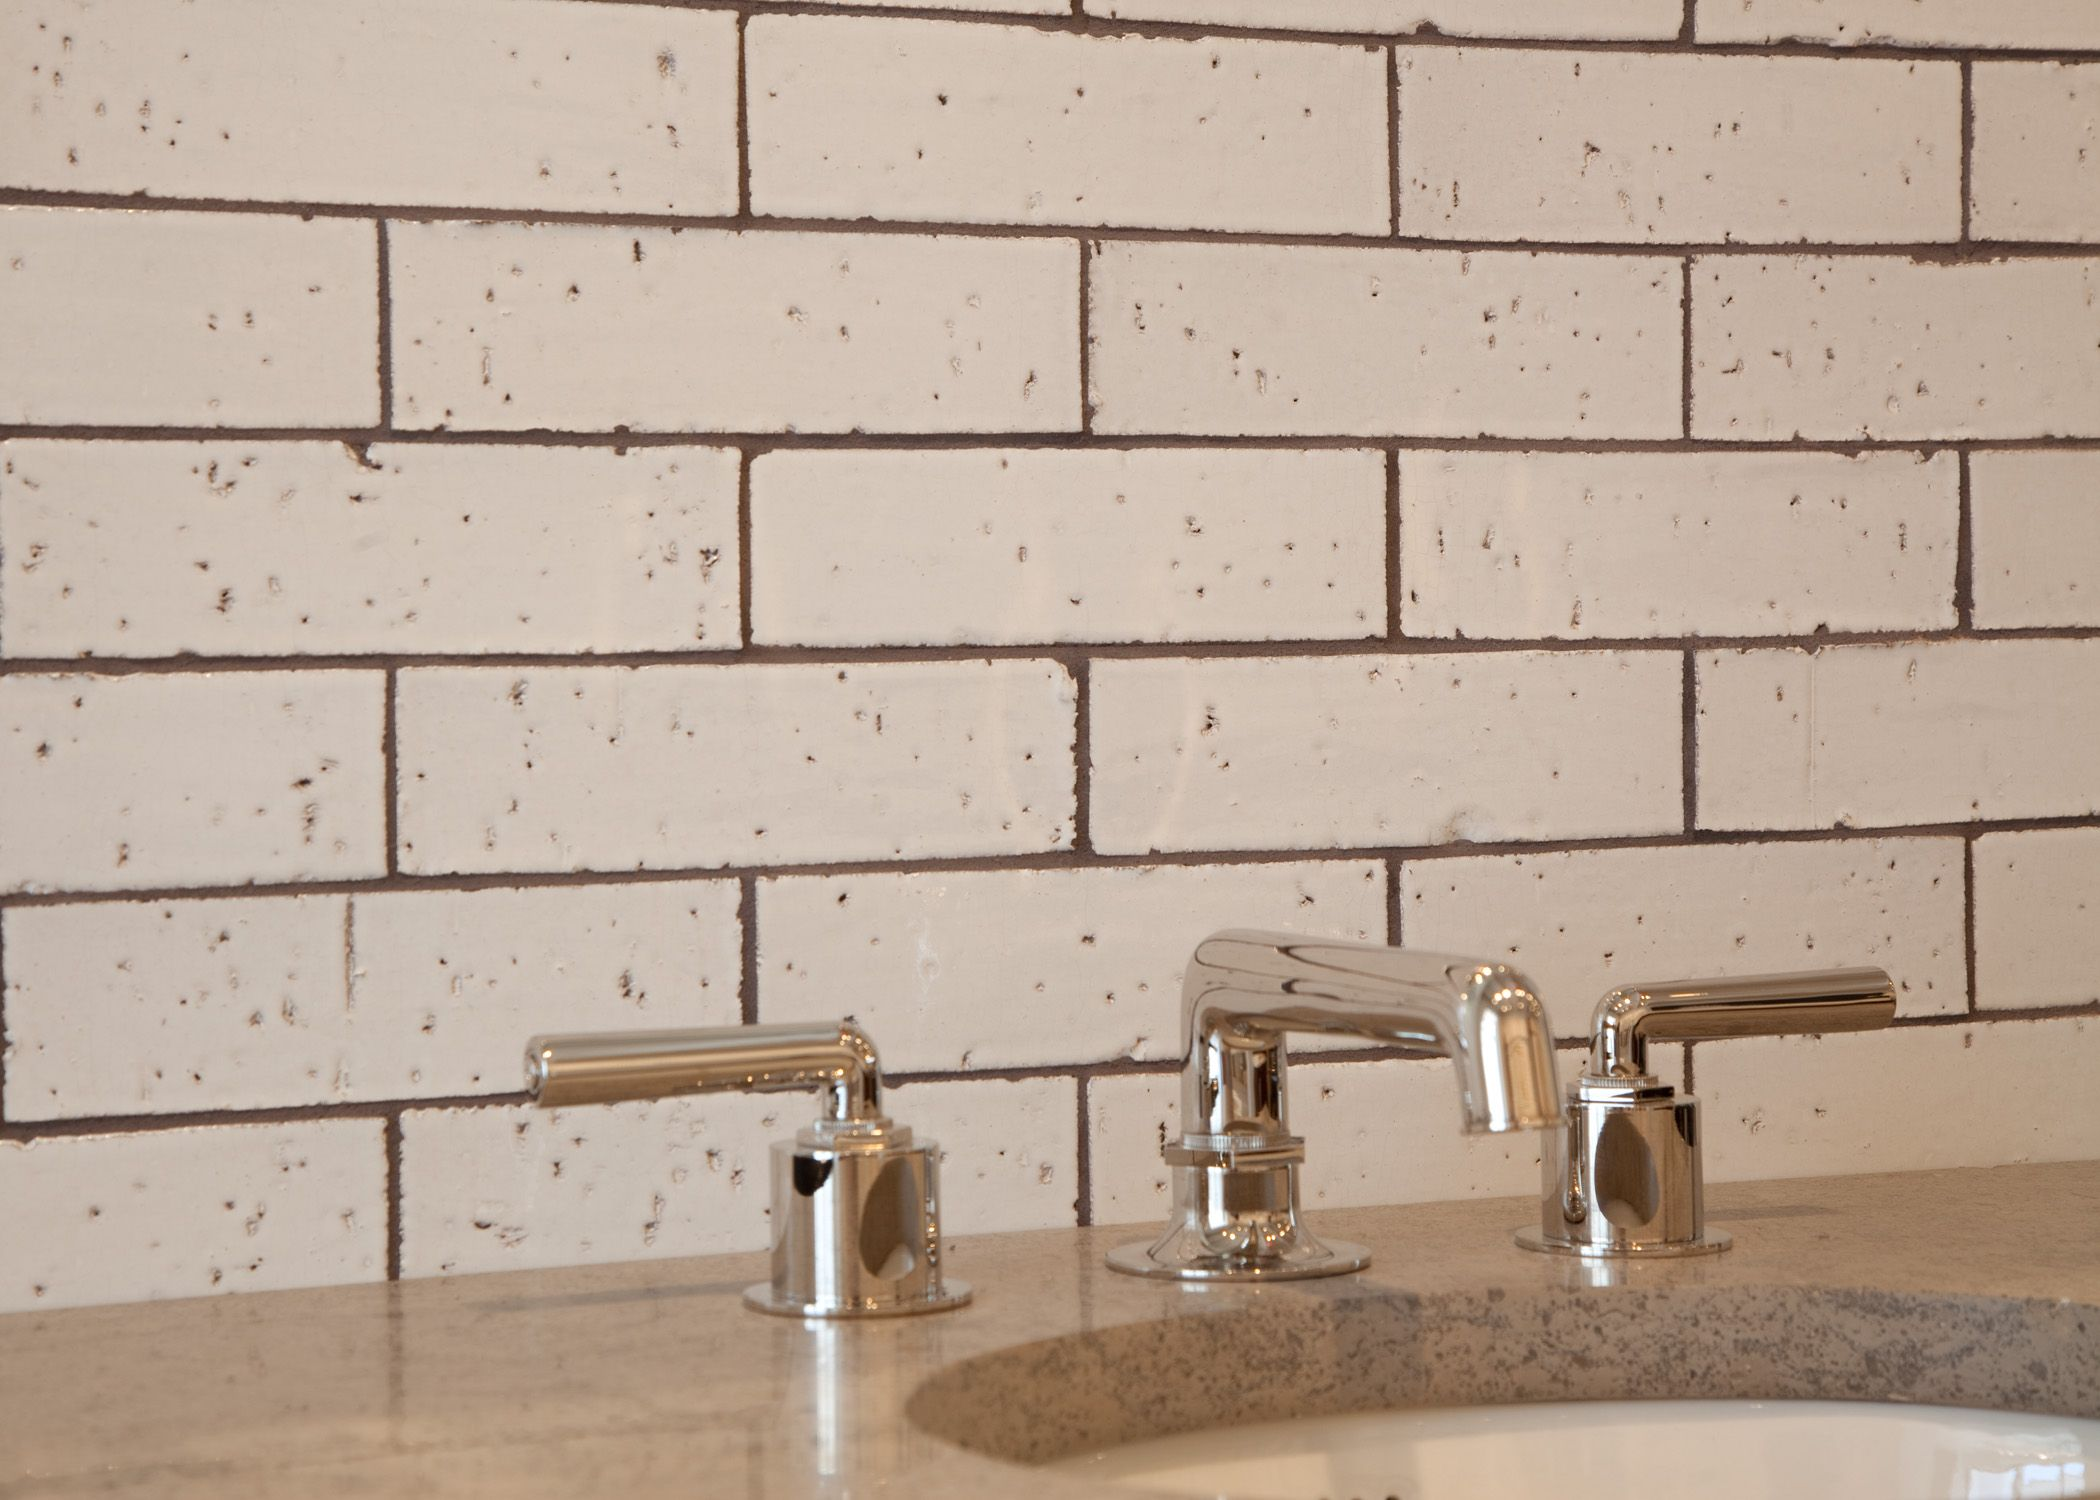 Henry Faucet in the Miami Showroom | Miami Showroom | Pinterest ...